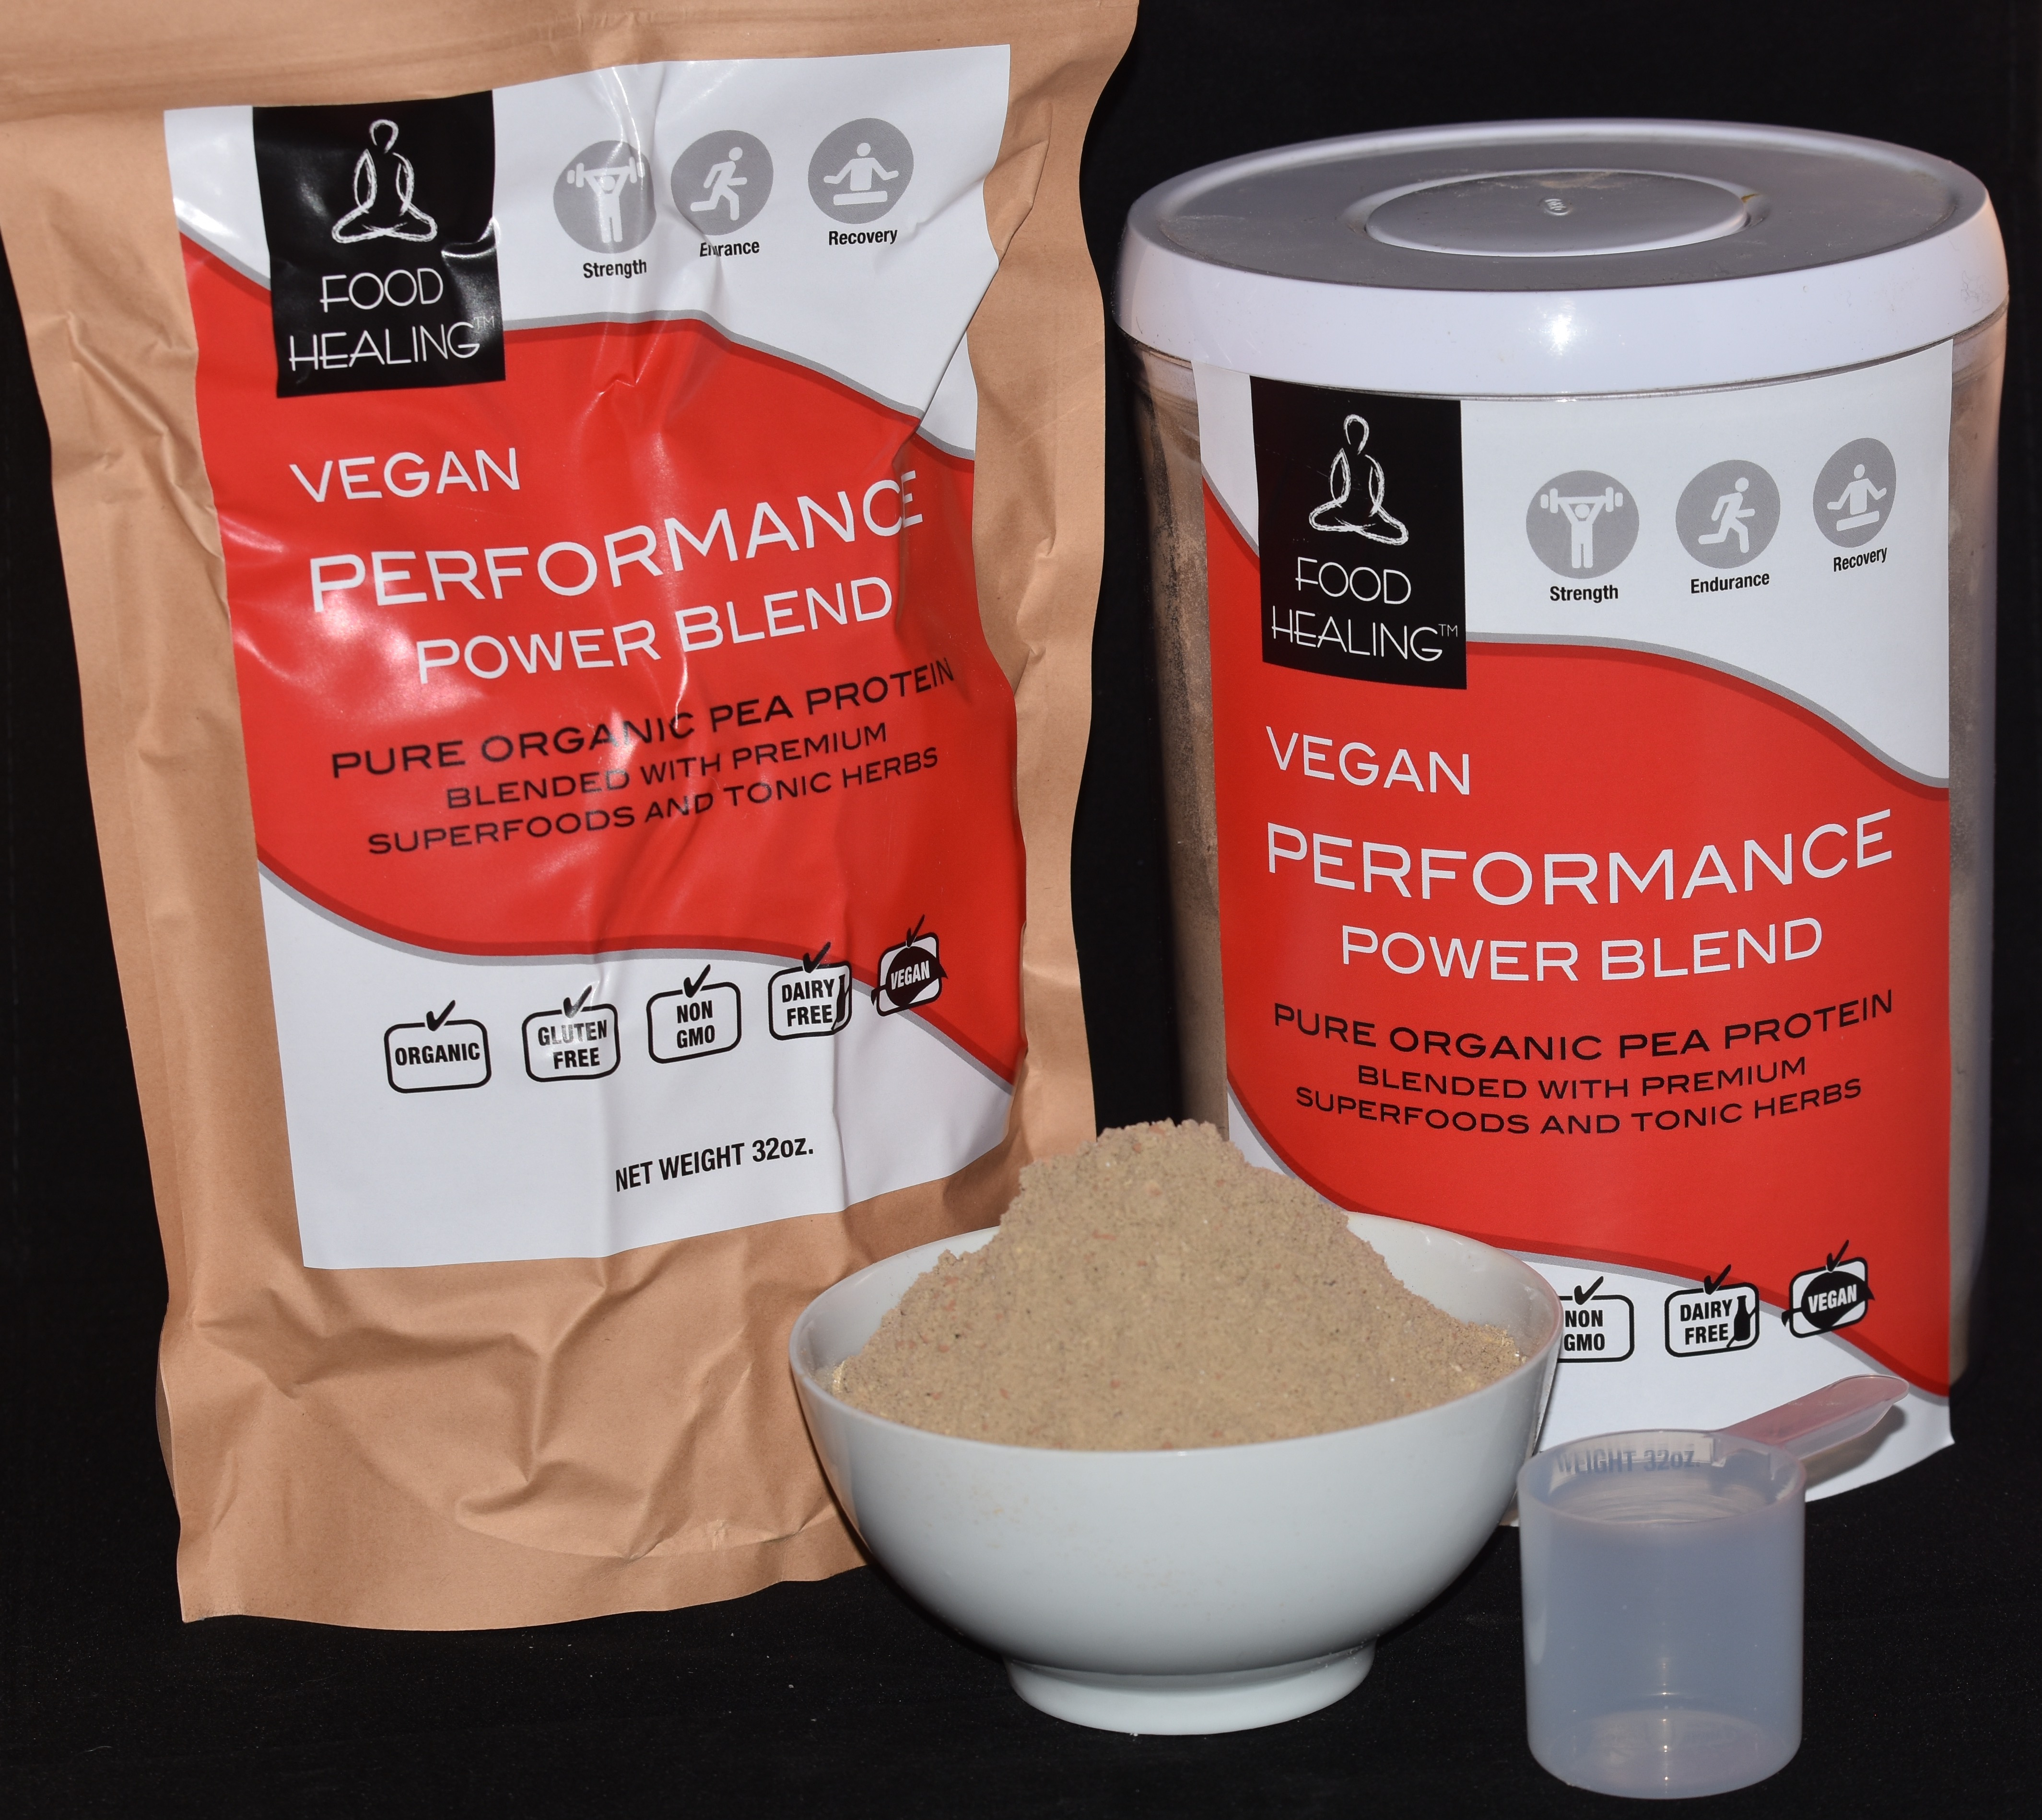 Vegan Performance Power Blend